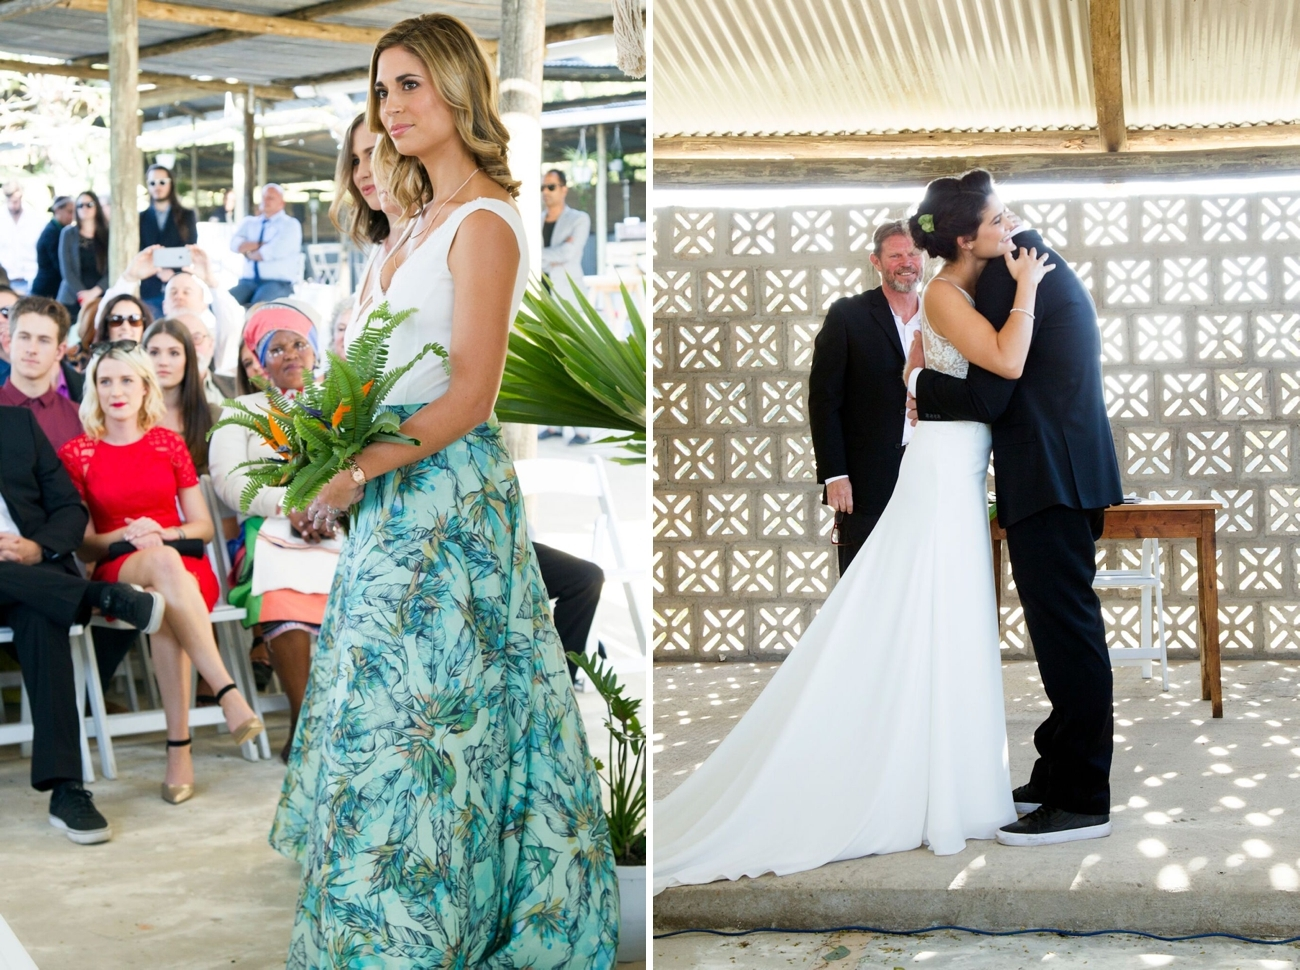 Durban North Coast Tropical Chic Wedding Ceremony | Credit: Oh Happy Day & Dane Peterson